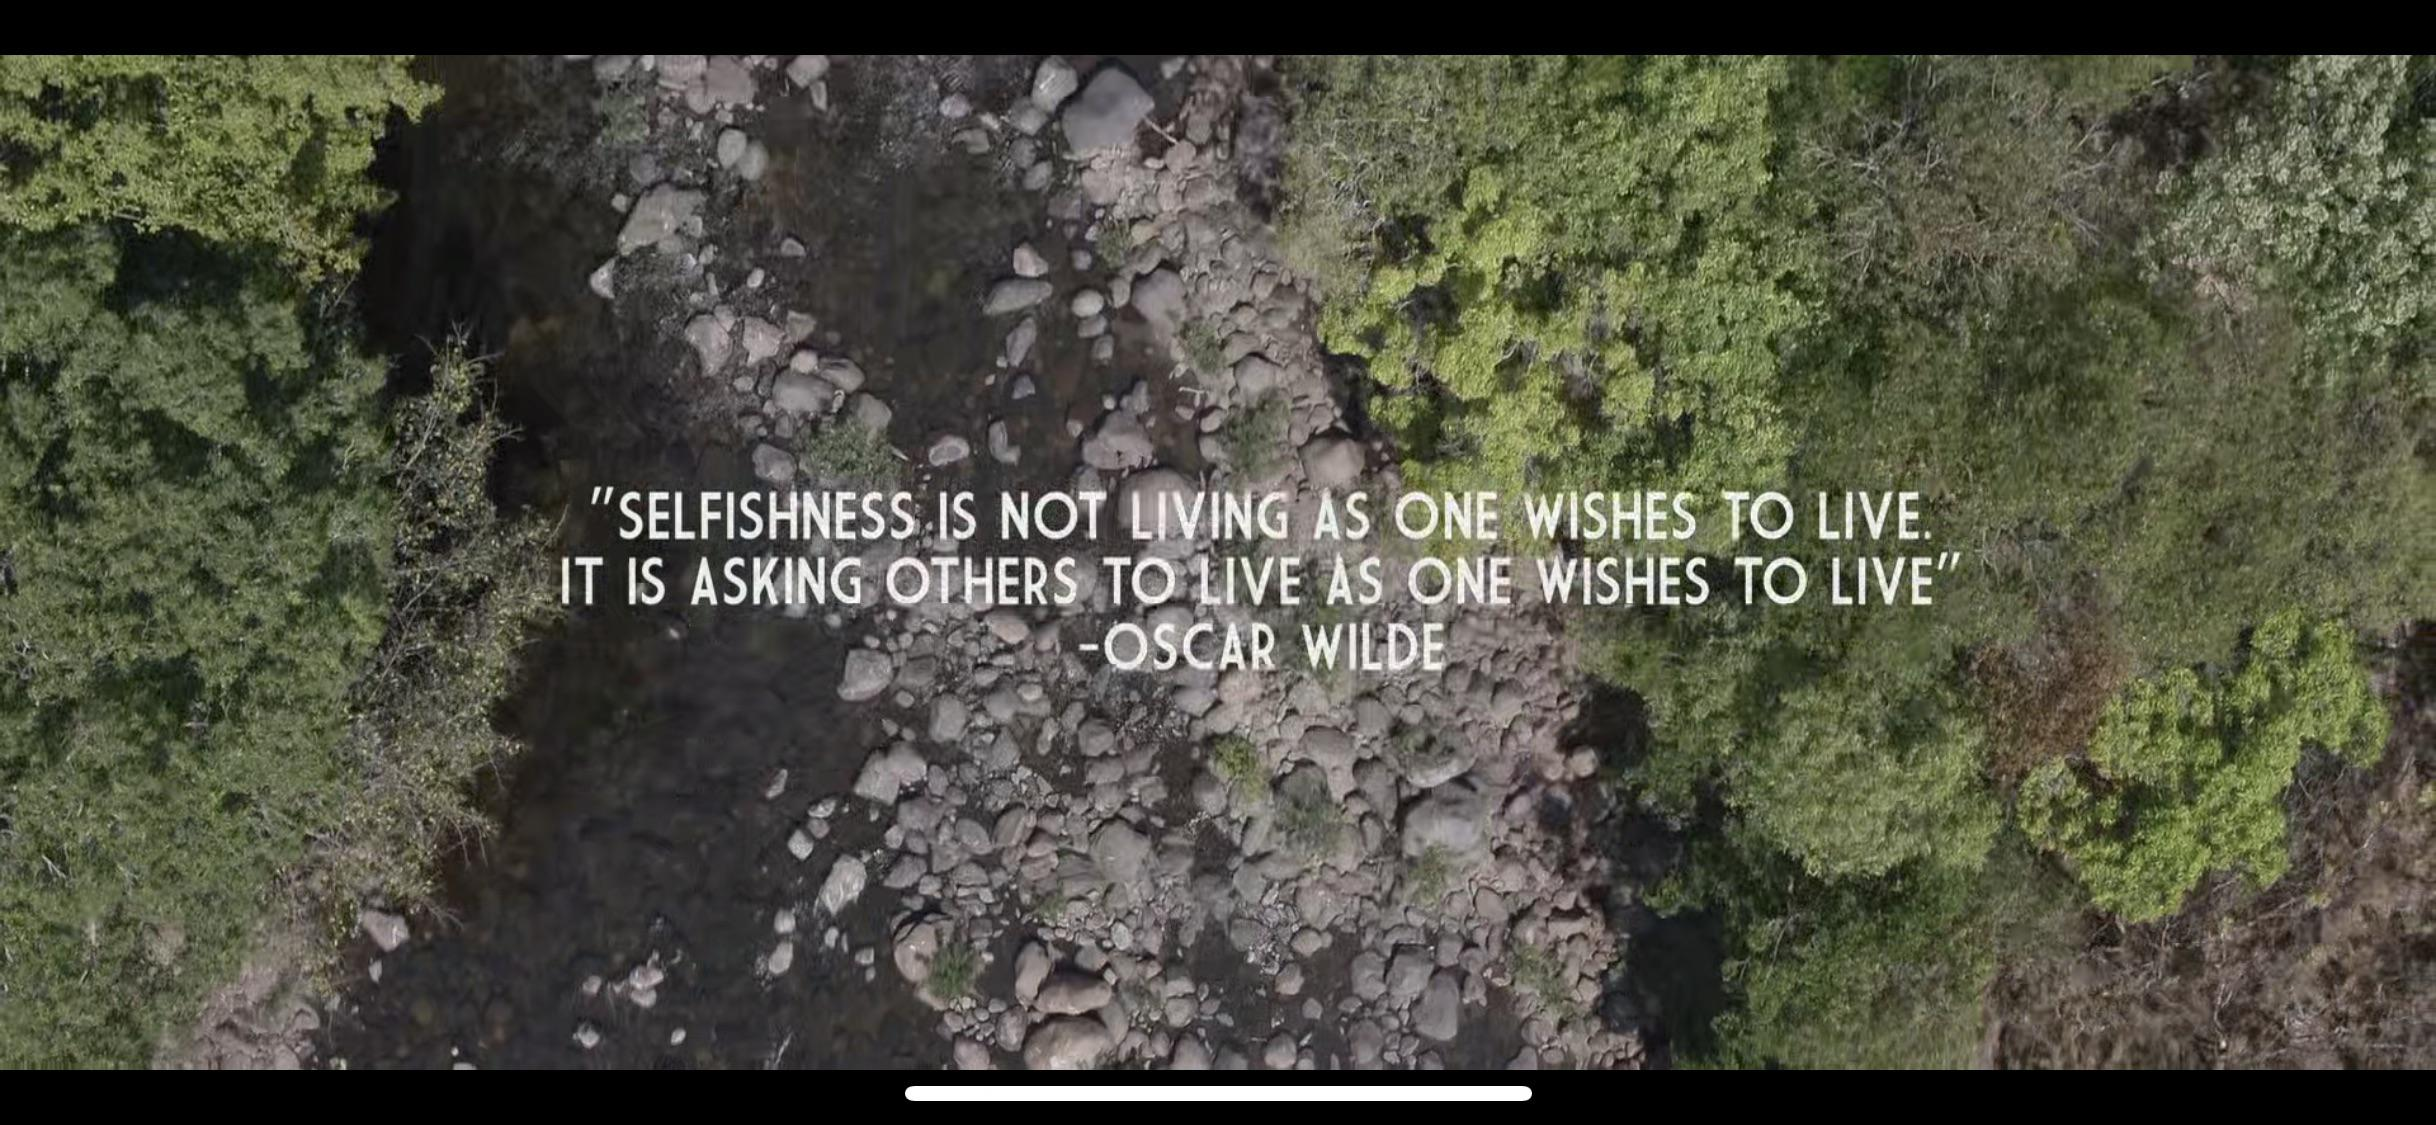 """""""SELFISHNESS IS NOT LIVING AS ONE WISHES TO LIVE. IT IS ASKING OTHERS TO LIVE AS ONE WISHES TO LIVE"""" -OSCAR WILDE [1080]"""